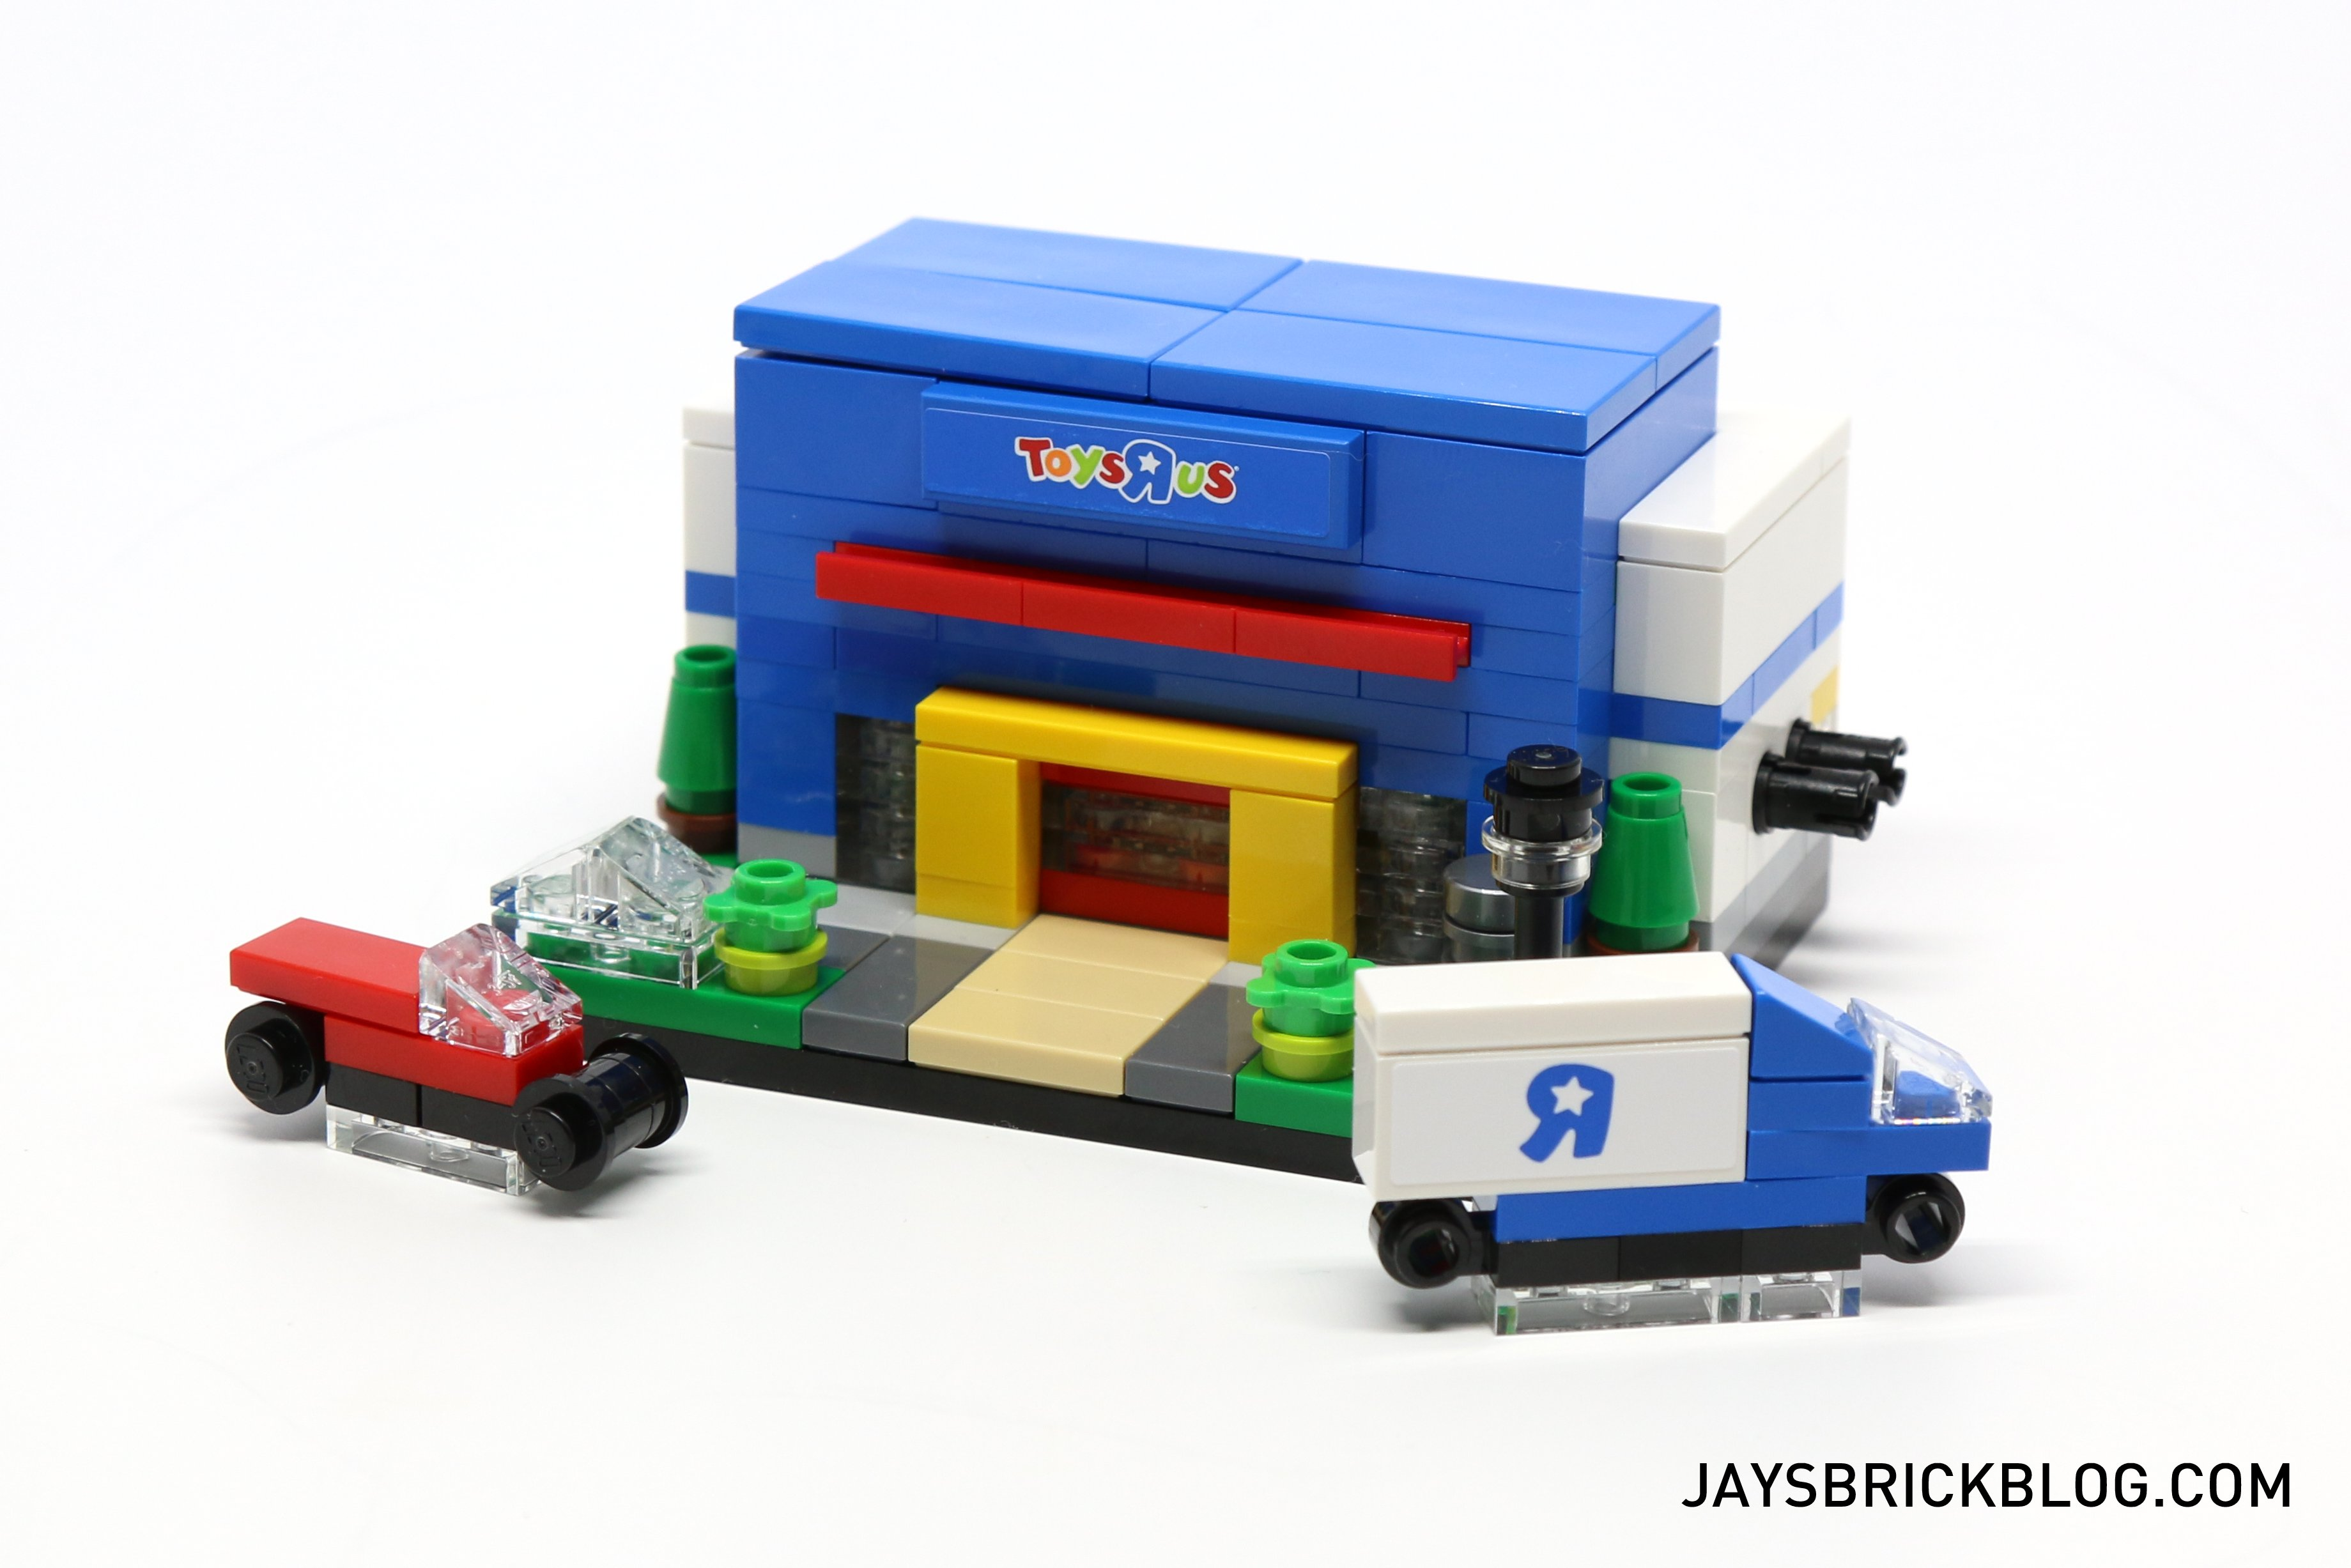 Lego Toys R Us : Review toys r us bricktober buildings